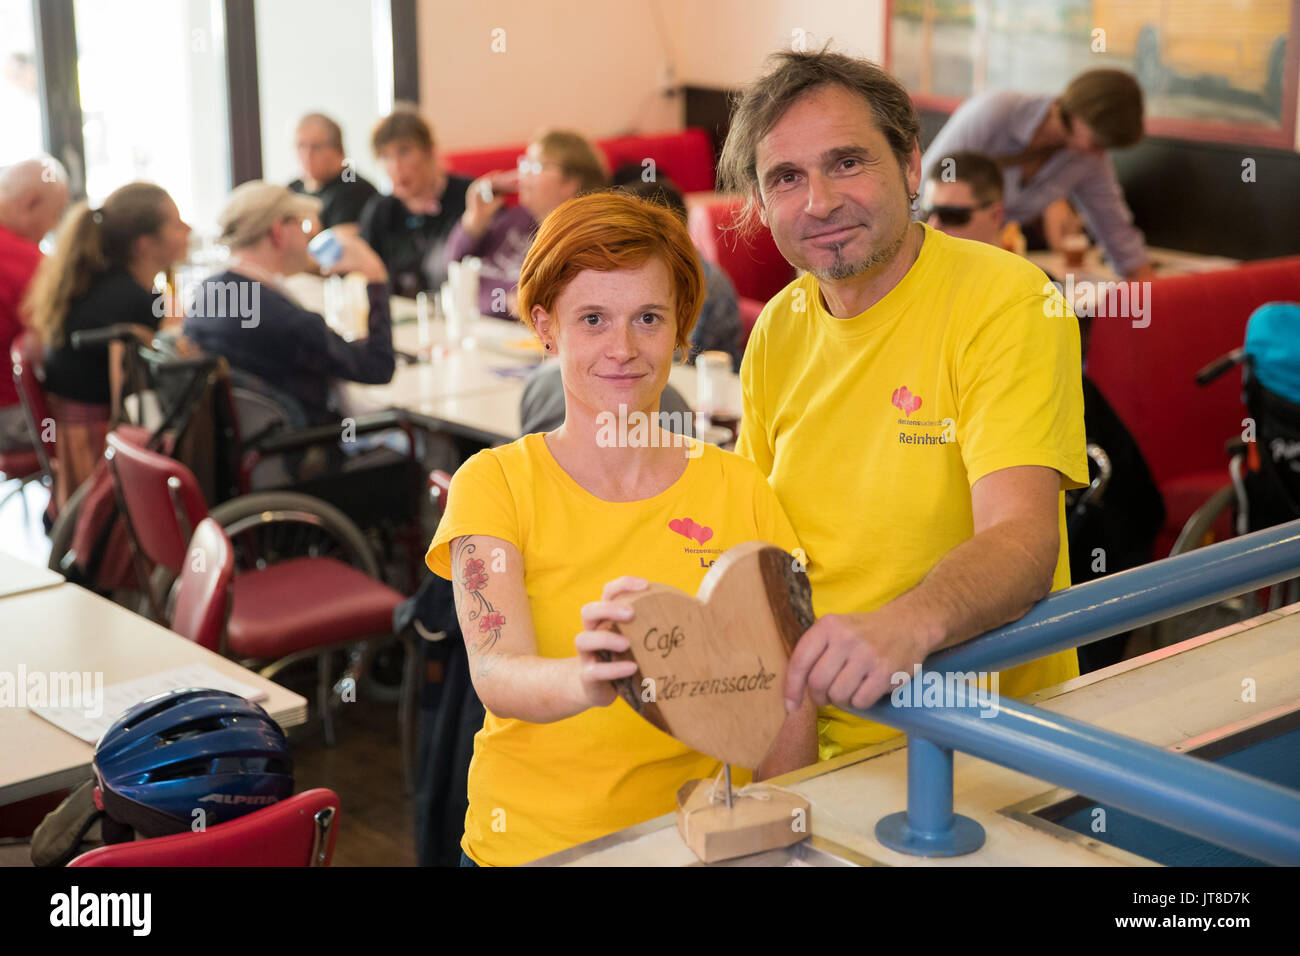 Planung eines Speed-Dating-Events